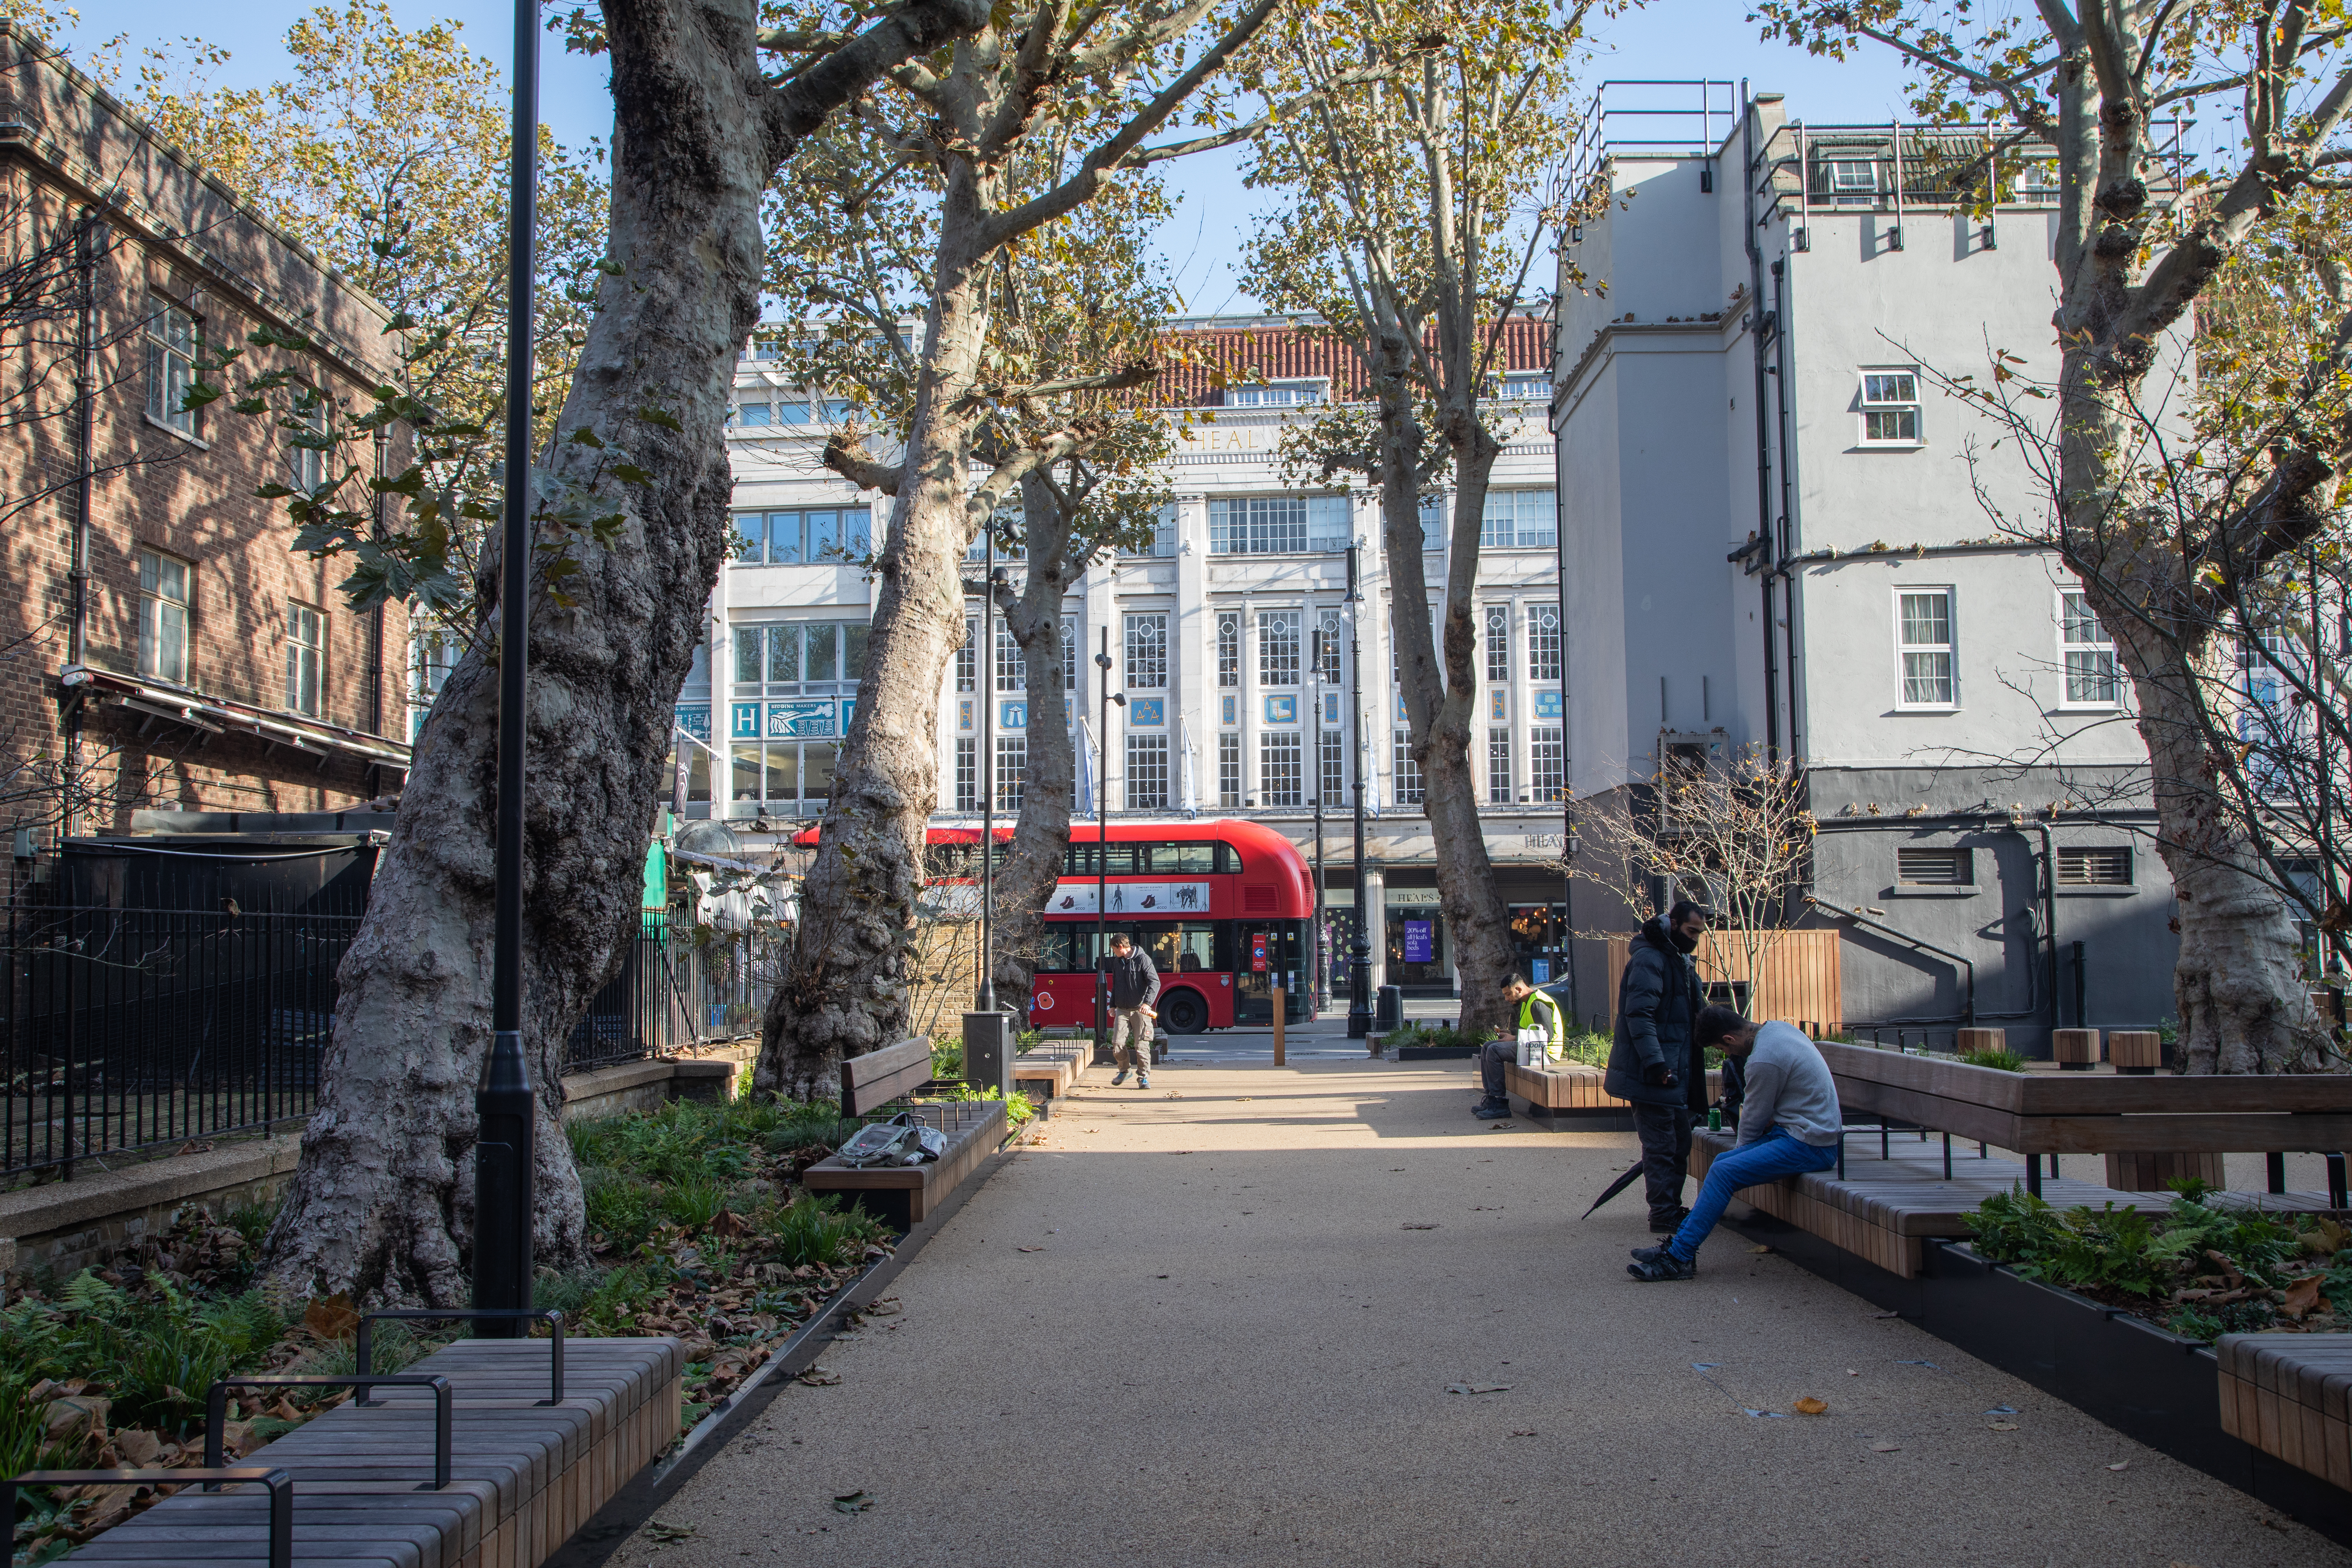 View of Whitfield Gardens after restoration to Tottenham Court Road